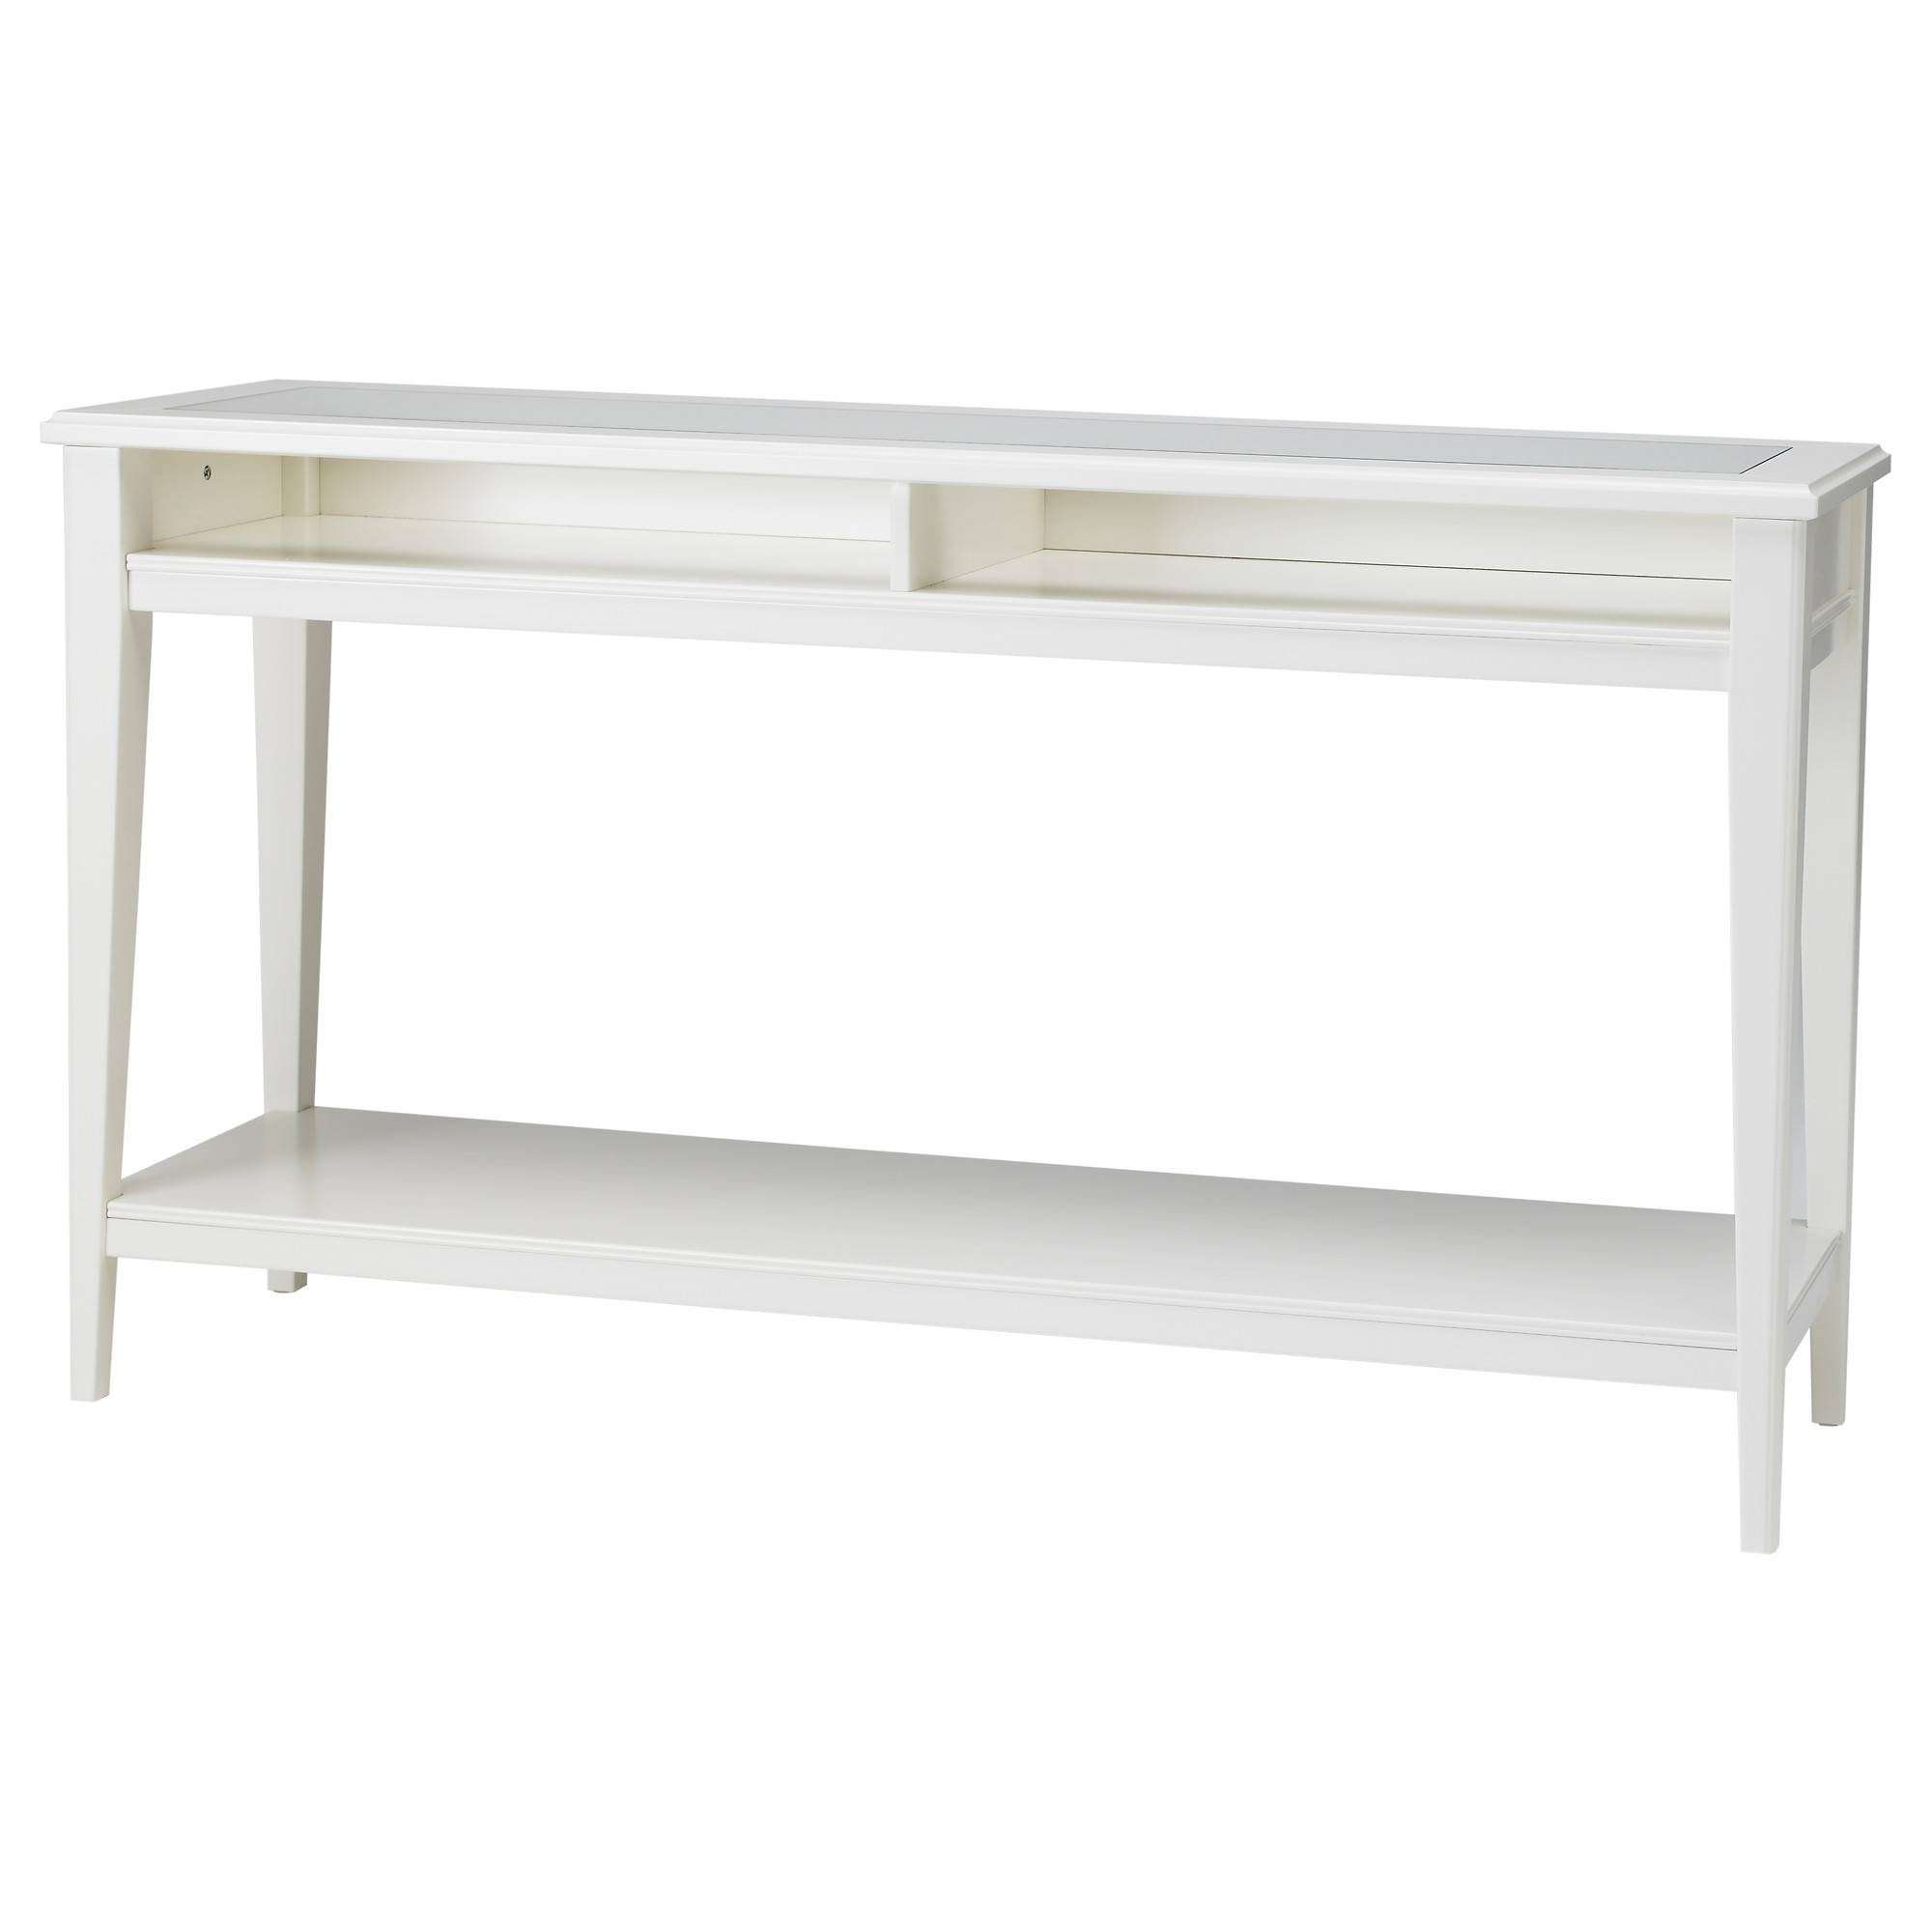 Liatorp Console Table White/glass 133X37 Cm - Ikea with Sideboard Tables (Image 8 of 15)